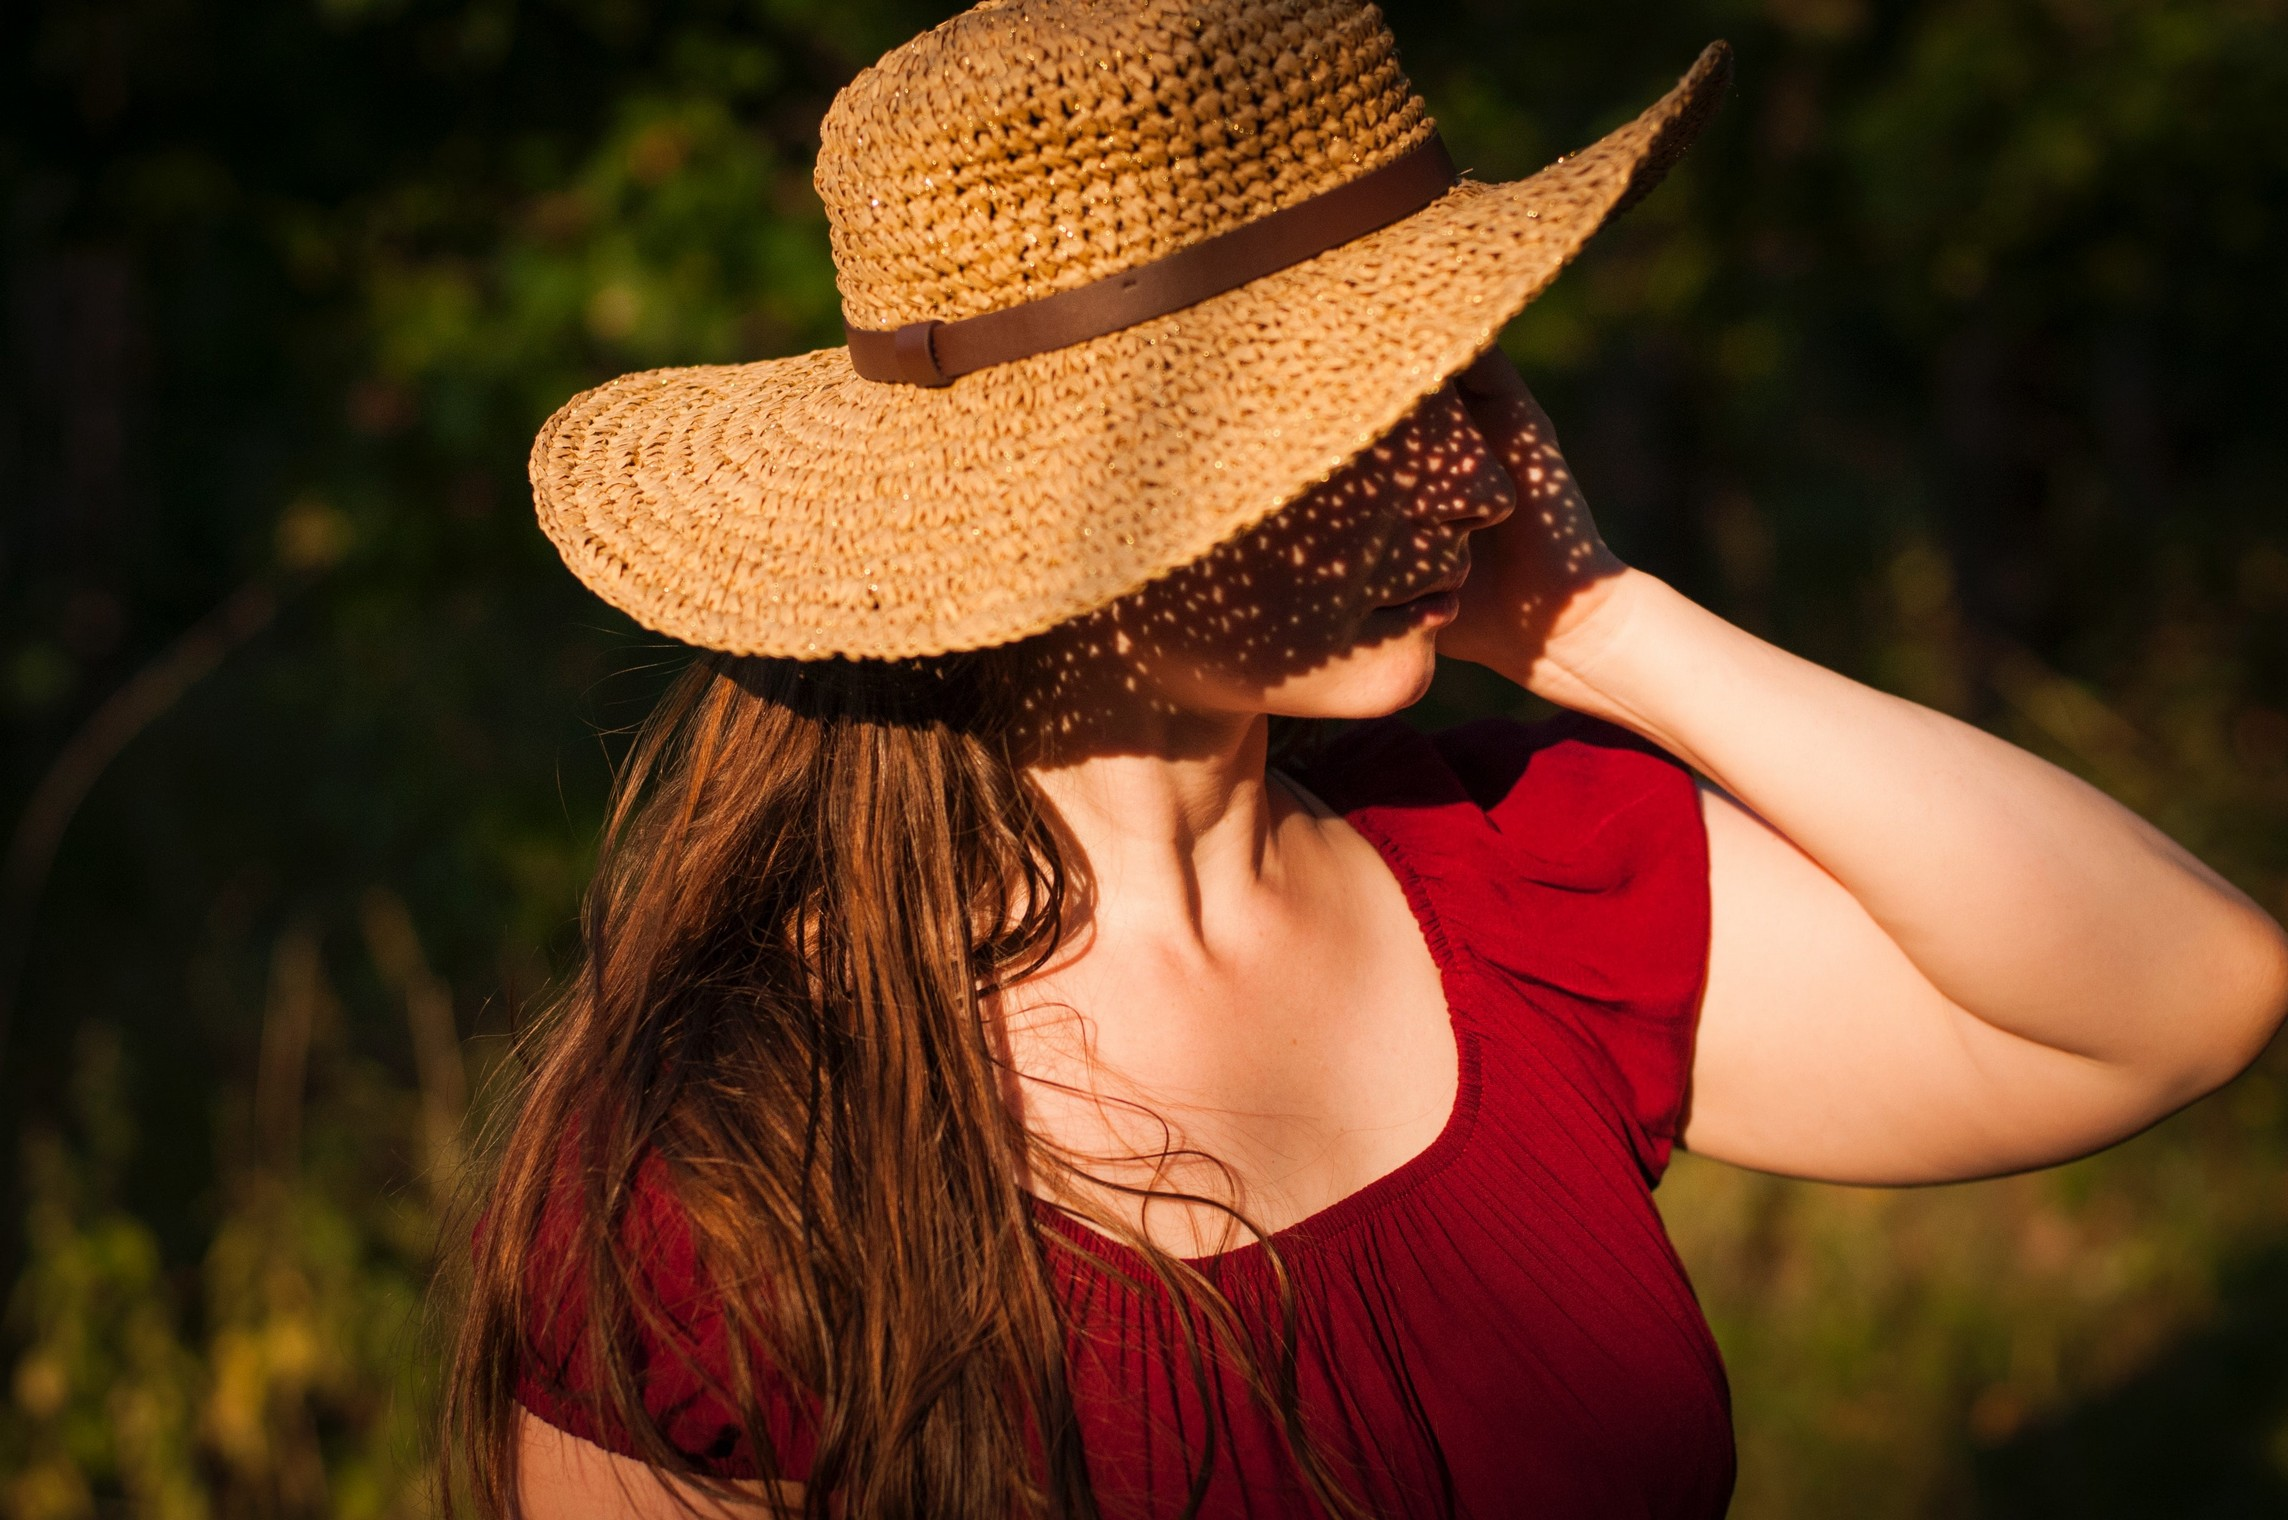 woman wearing a hat in sunshine, which is always advisable during a heatwave.